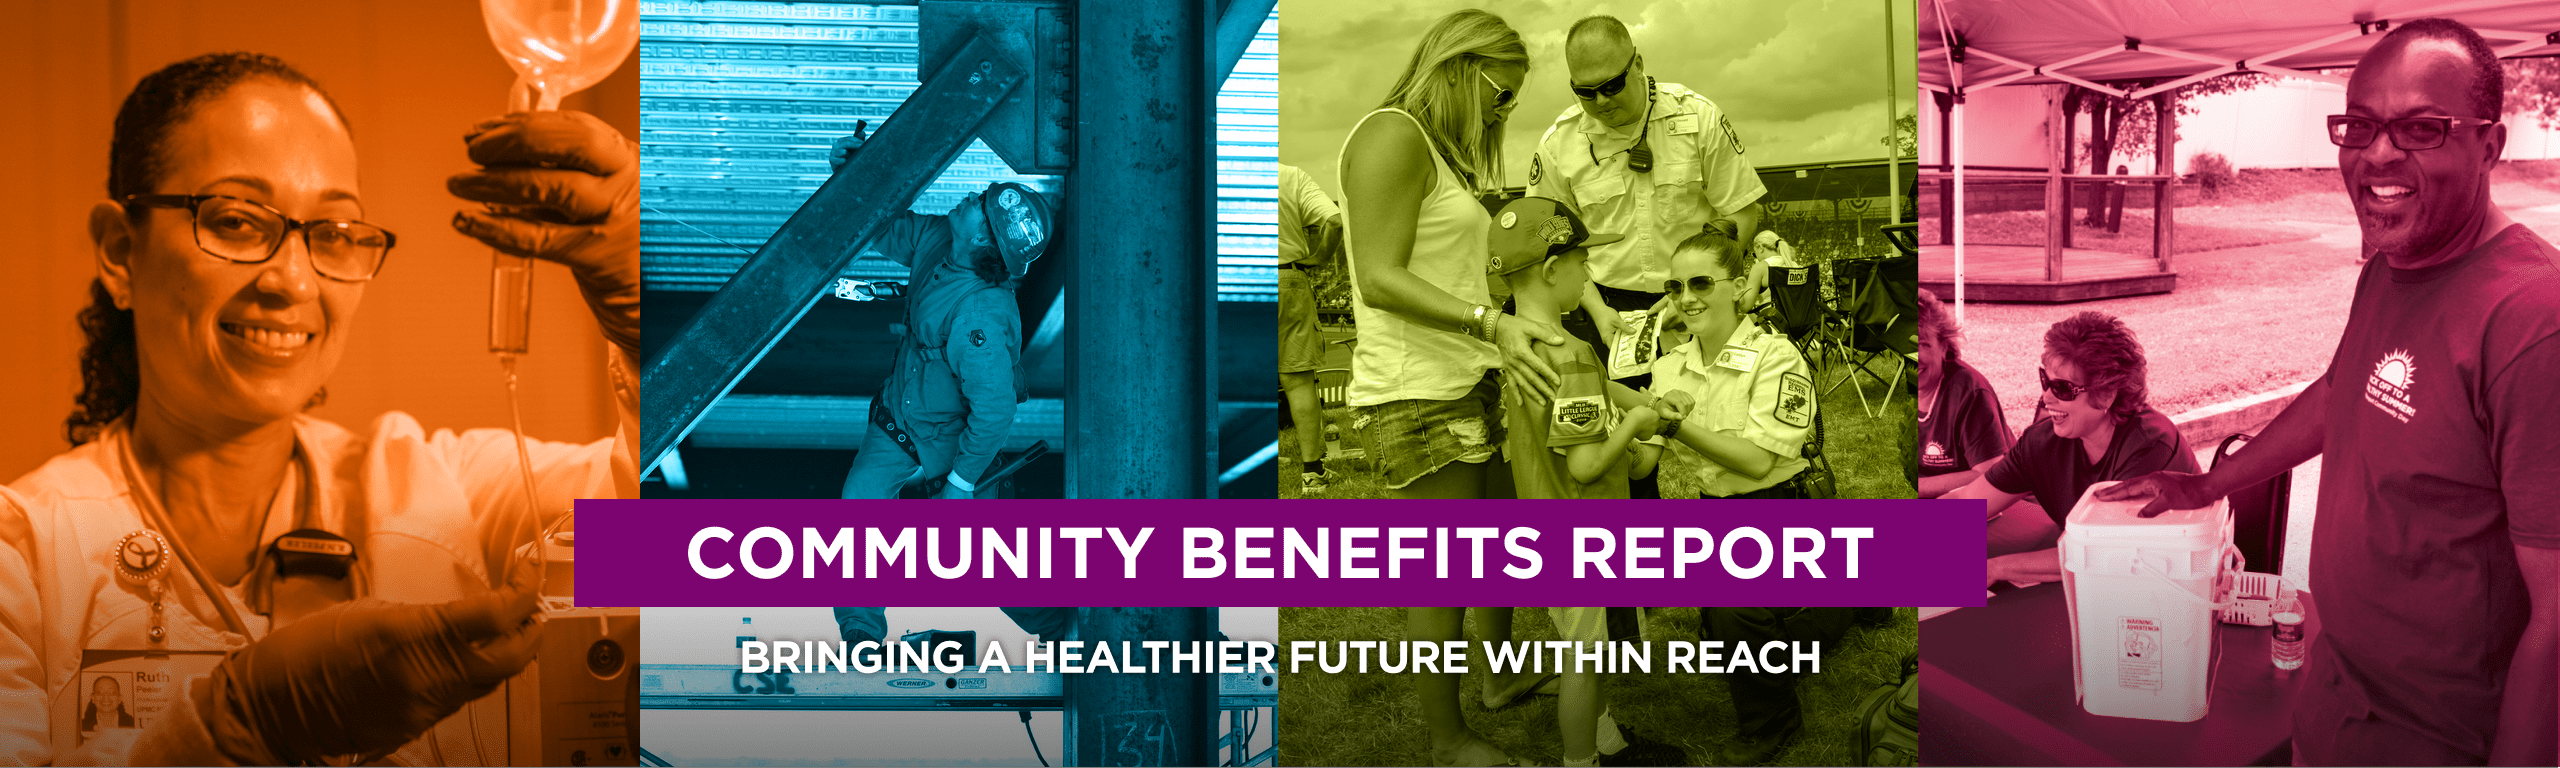 Community Benefits Report Bringing a Healthier Future Within Reach